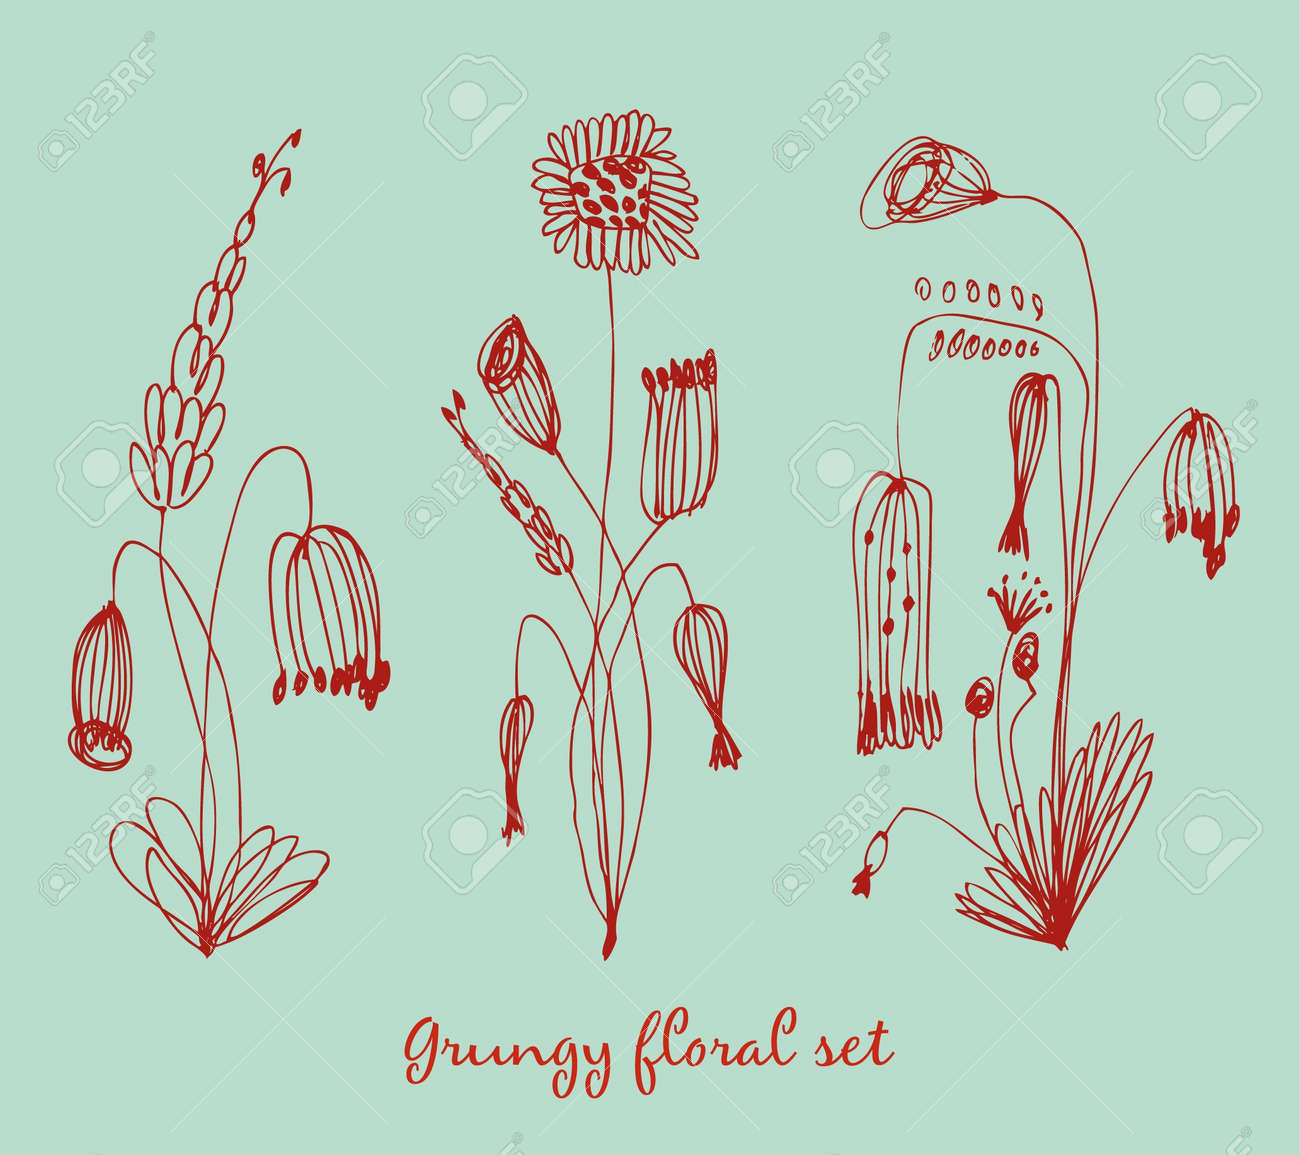 Grungy floral set. Collection of vintage bouquets. Drawn floral compositions Stock Vector - 16236401